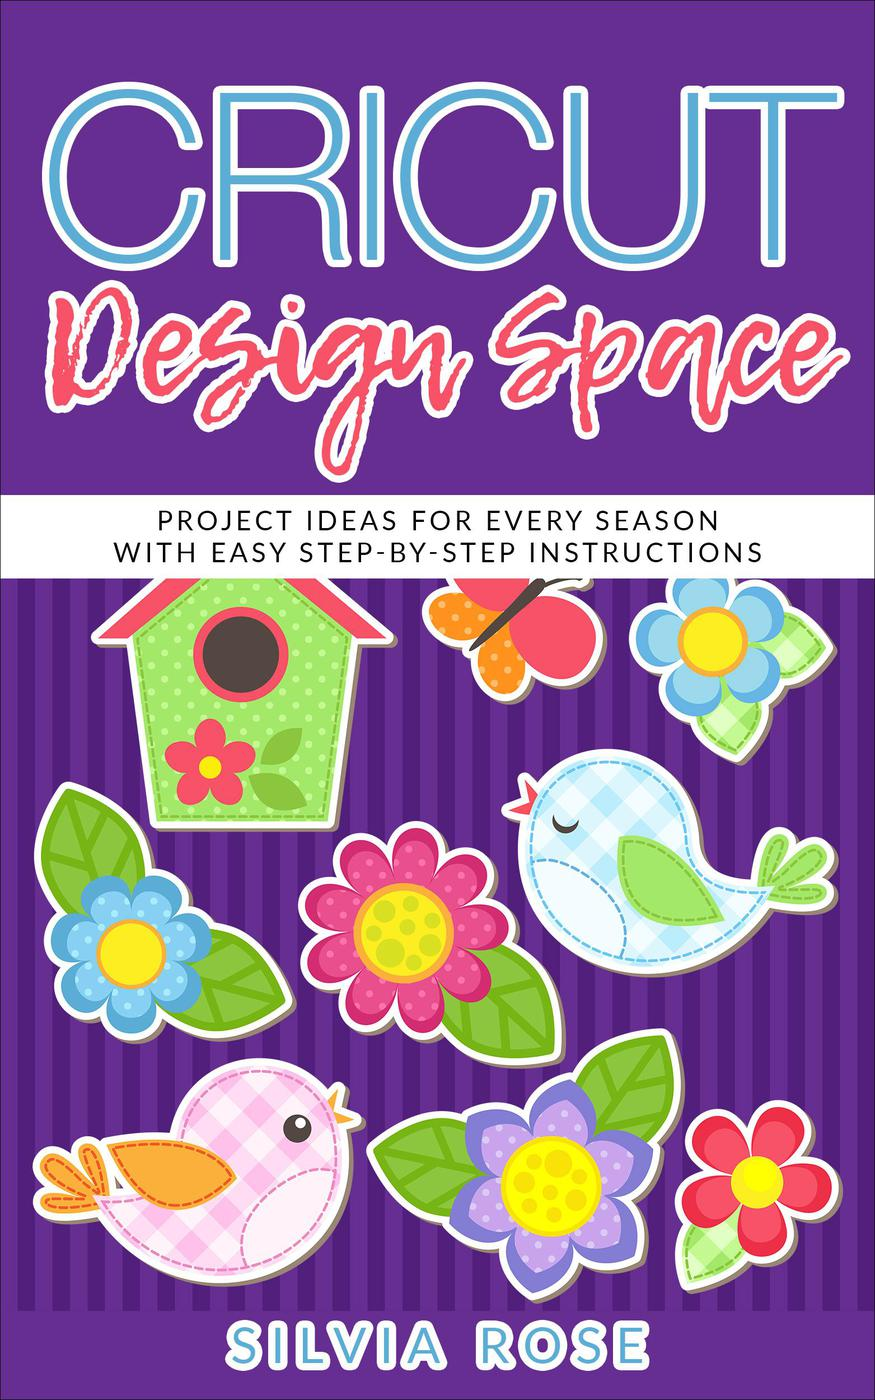 Cricut Design Space: Project Ideas for Every Season with Easy Step-by-Step Instructions